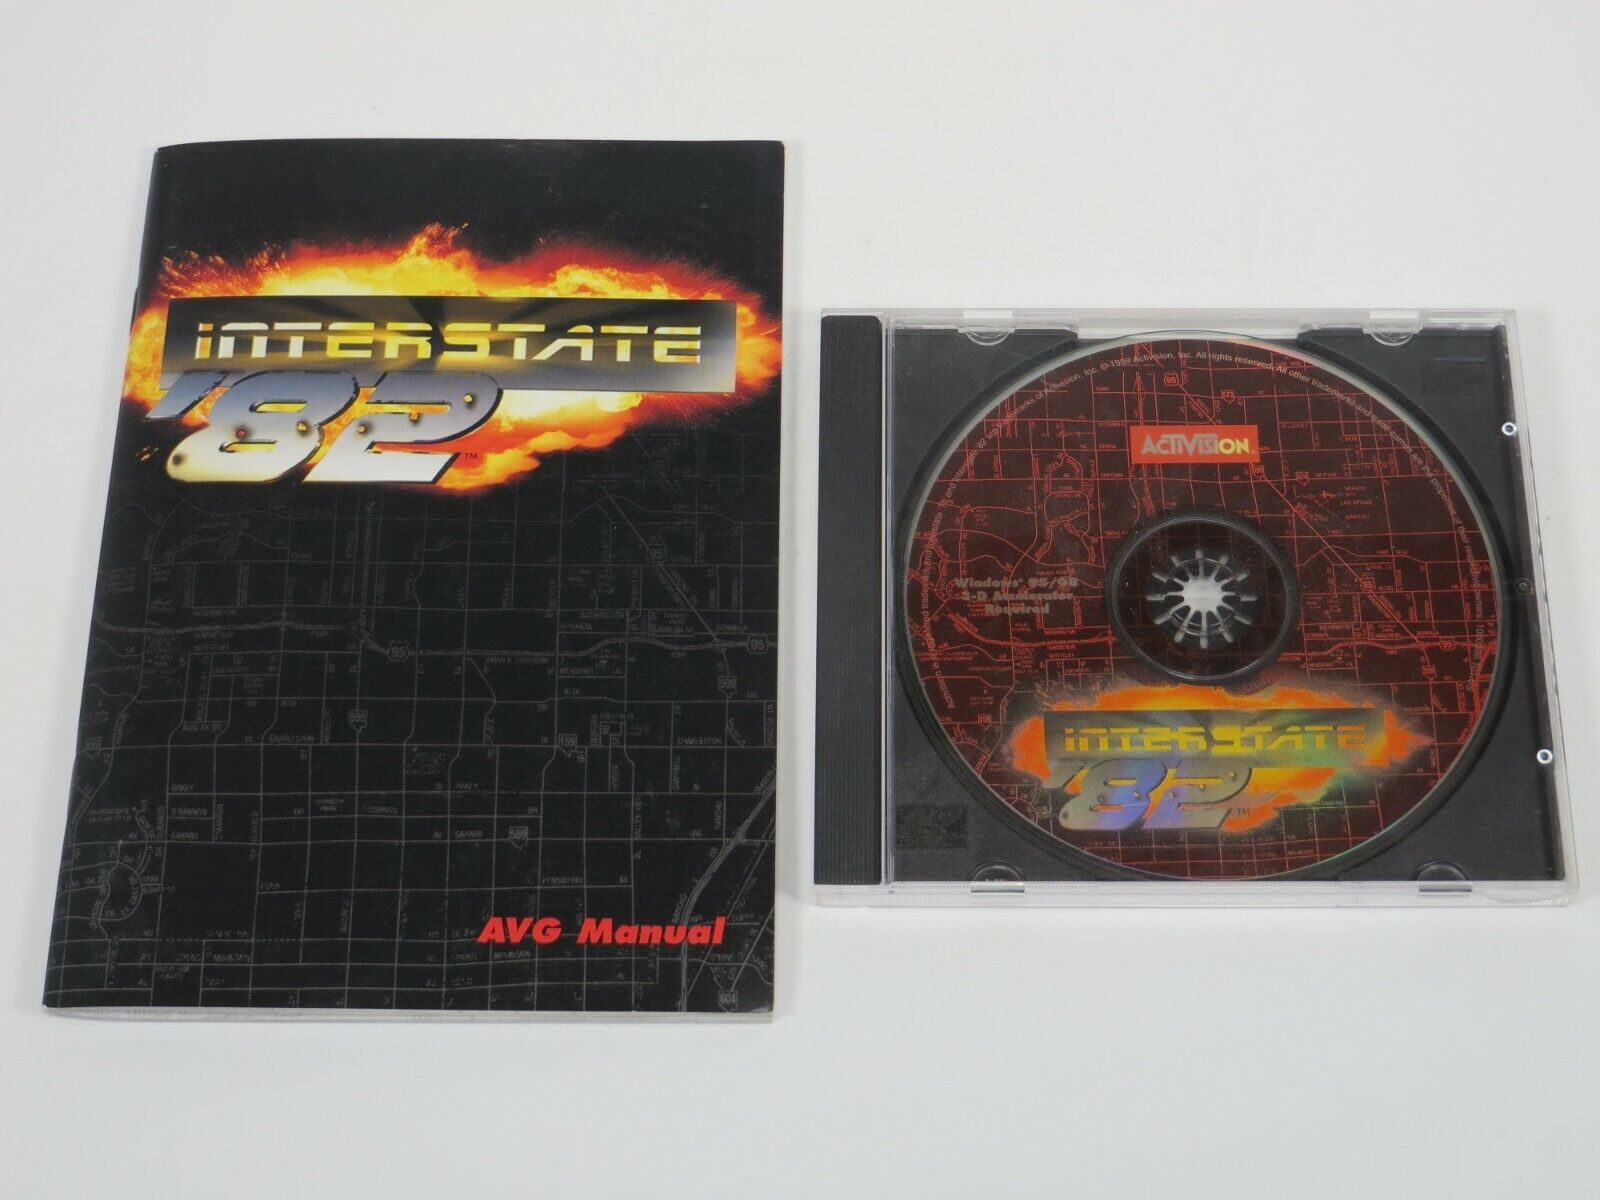 Computer Games - The Interstate '82 (PC, 1999) PC Vintage Computer Game Activision